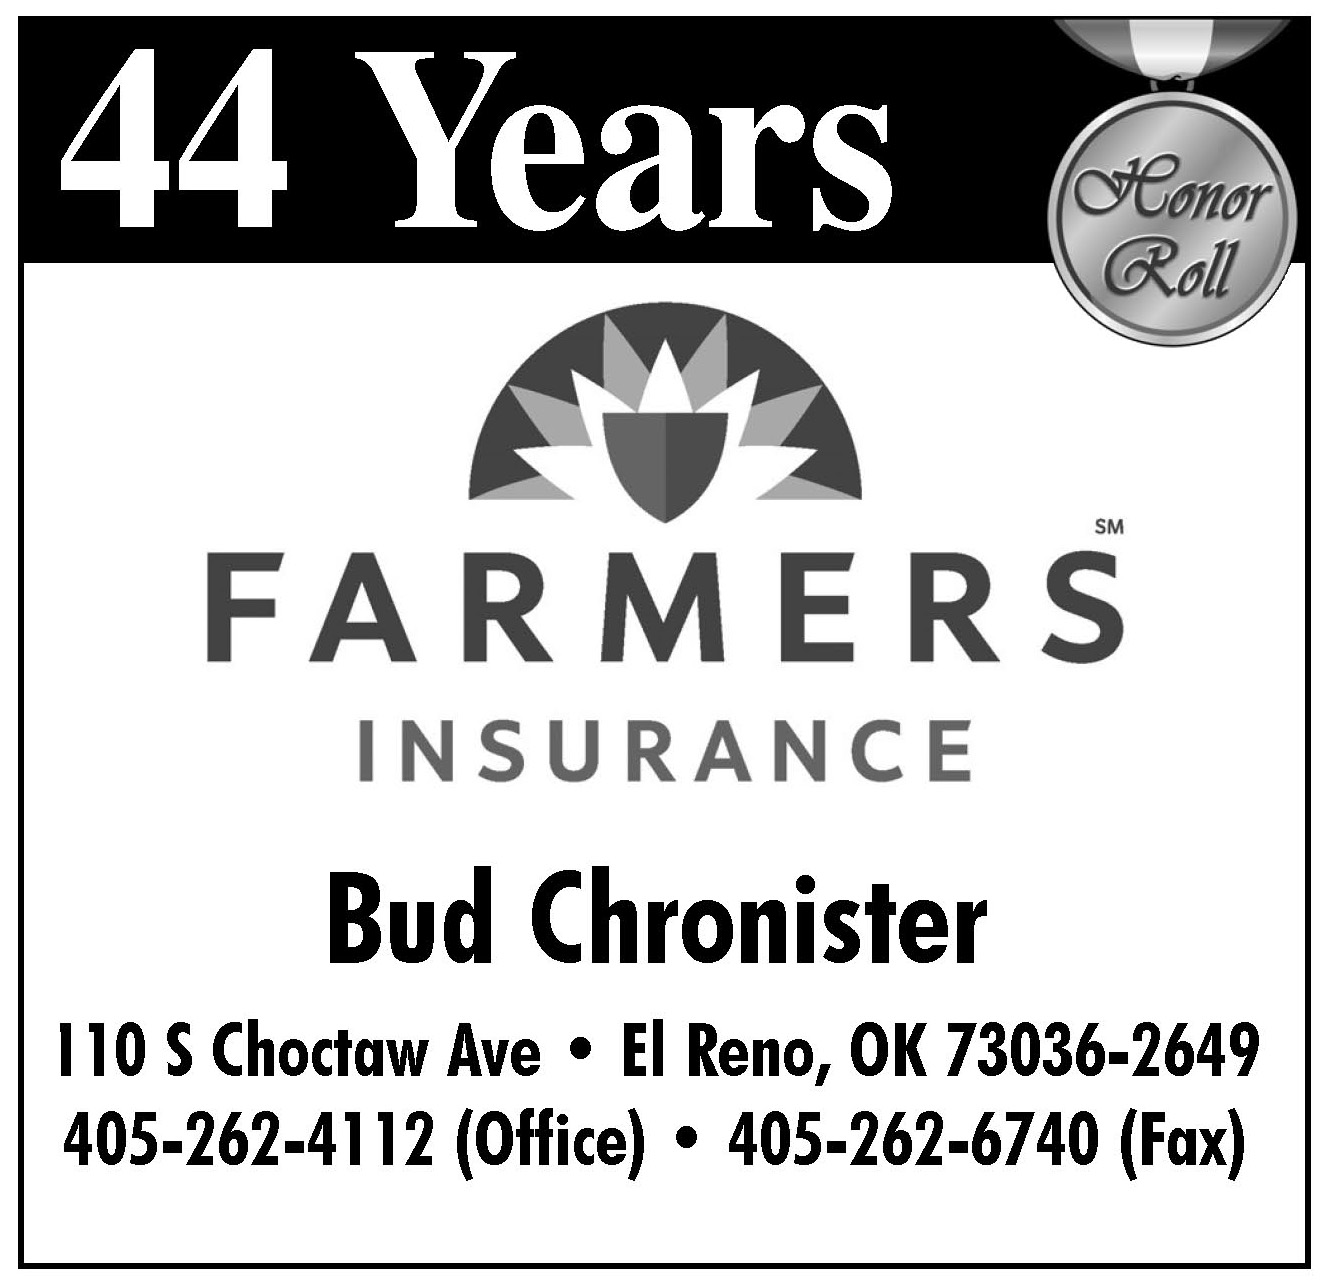 Bud Chronister